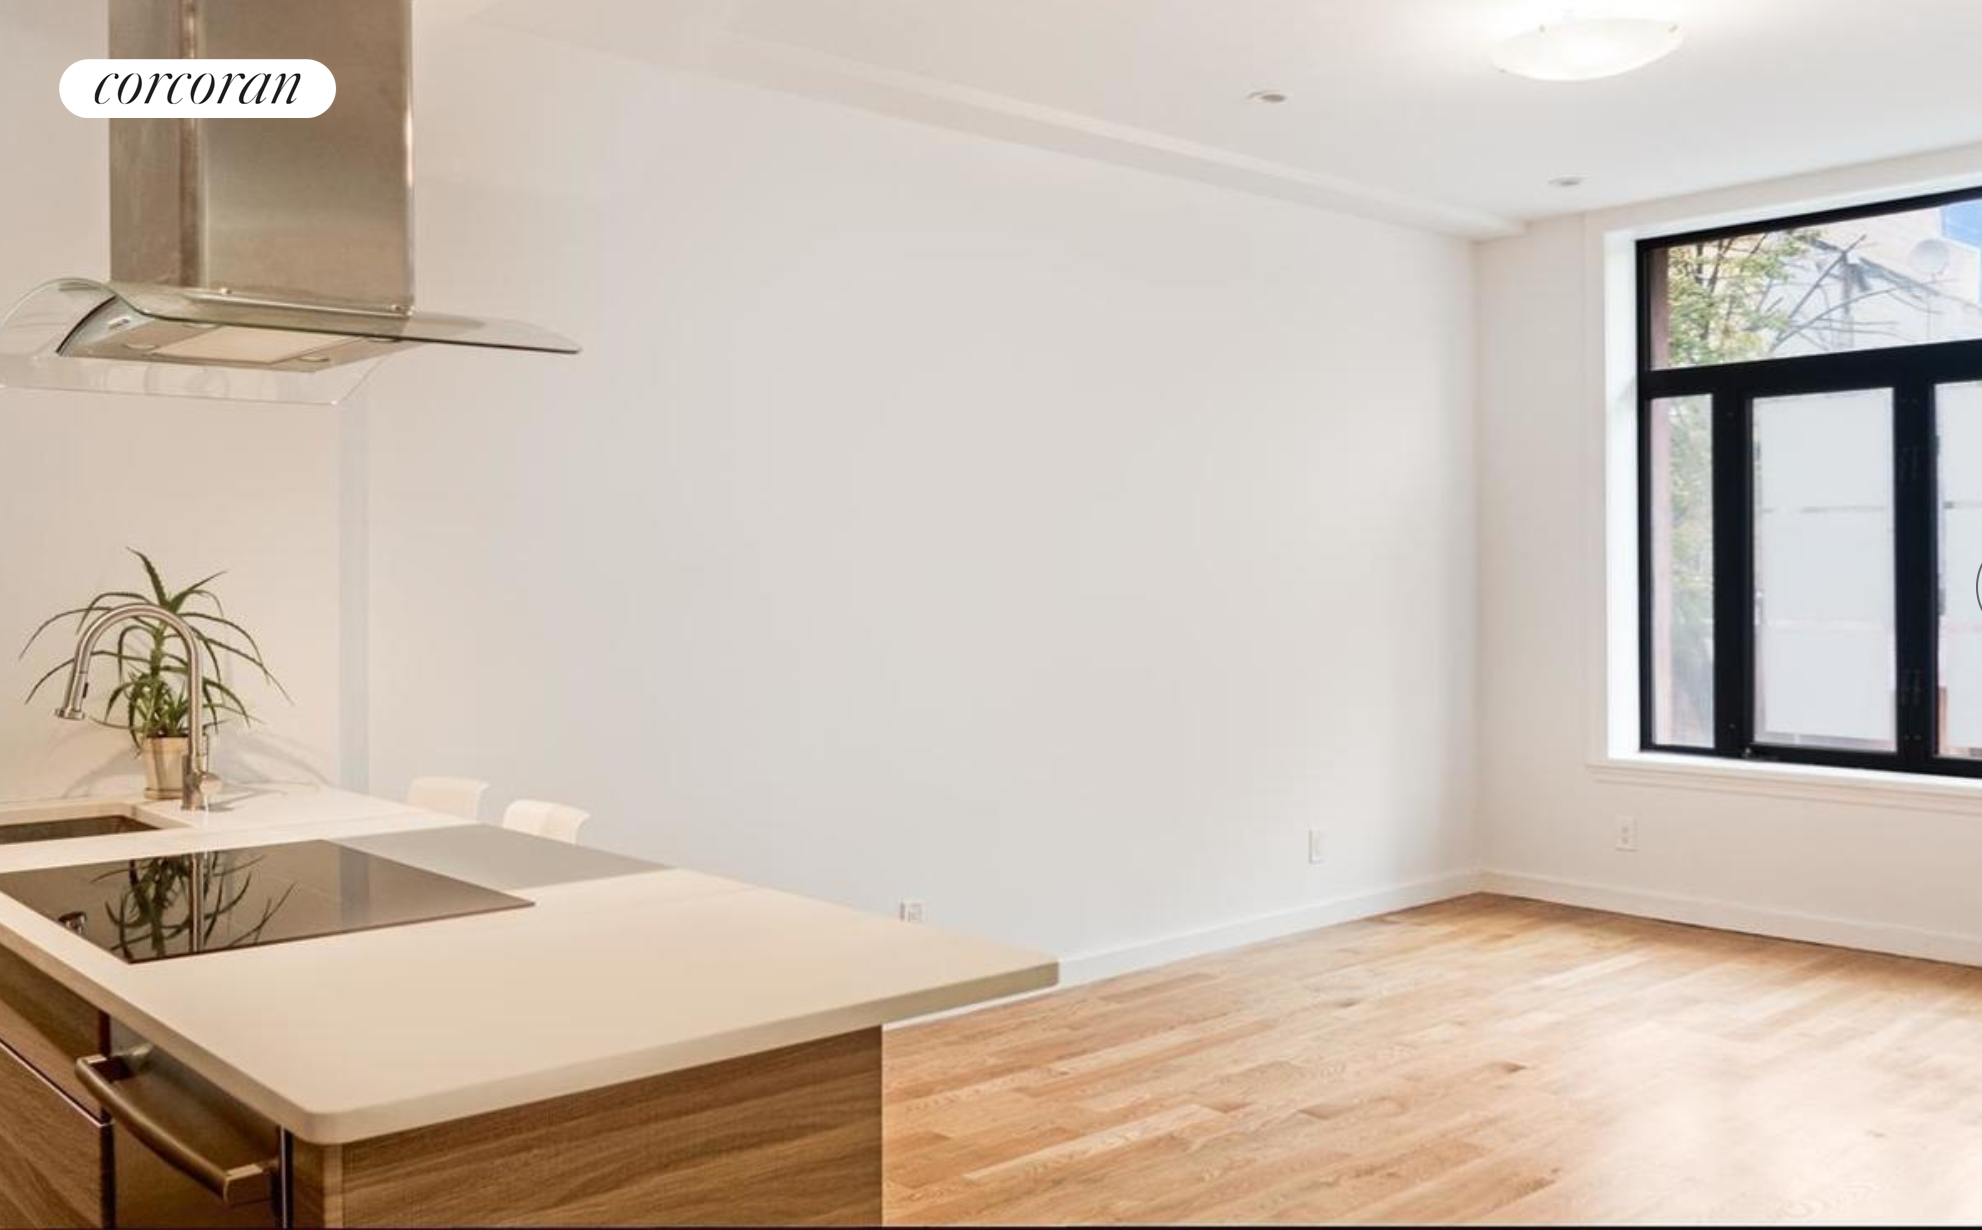 Apartment for sale at 244 Franklin Avenue, Apt 2A